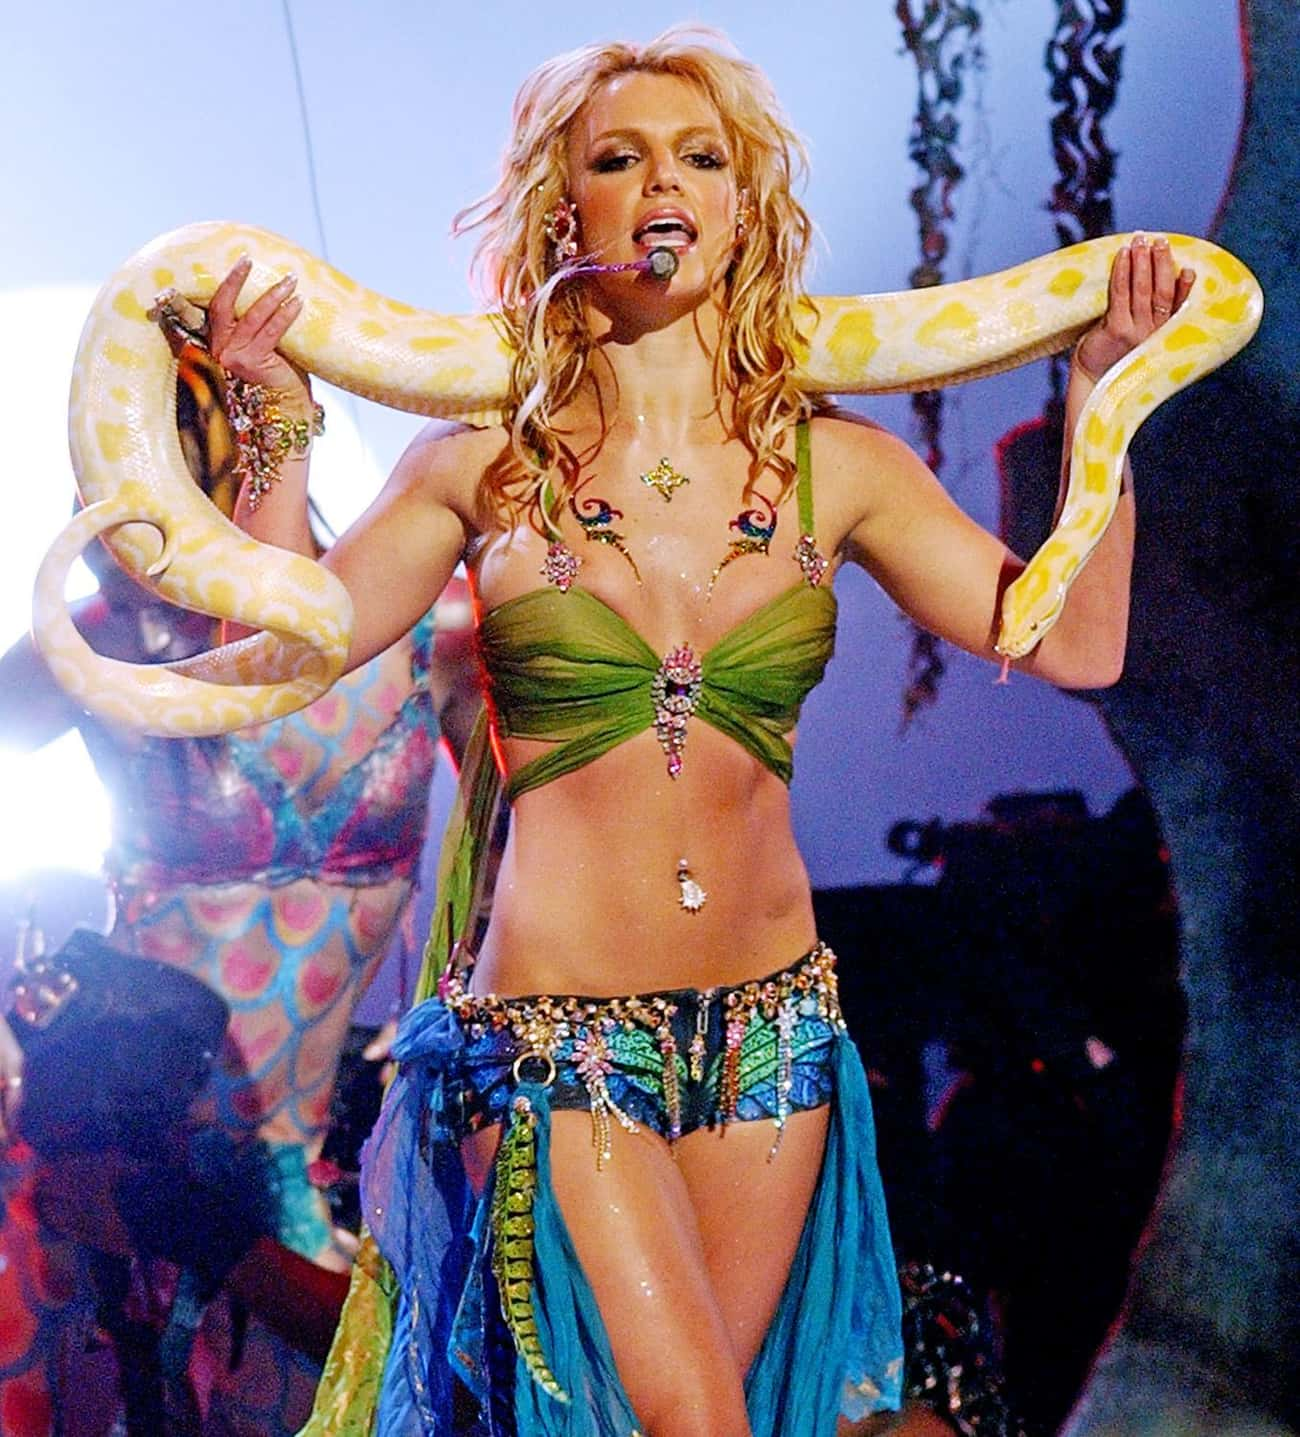 Britney Spears, 2001 is listed (or ranked) 3 on the list Famous People Who Gained Weight